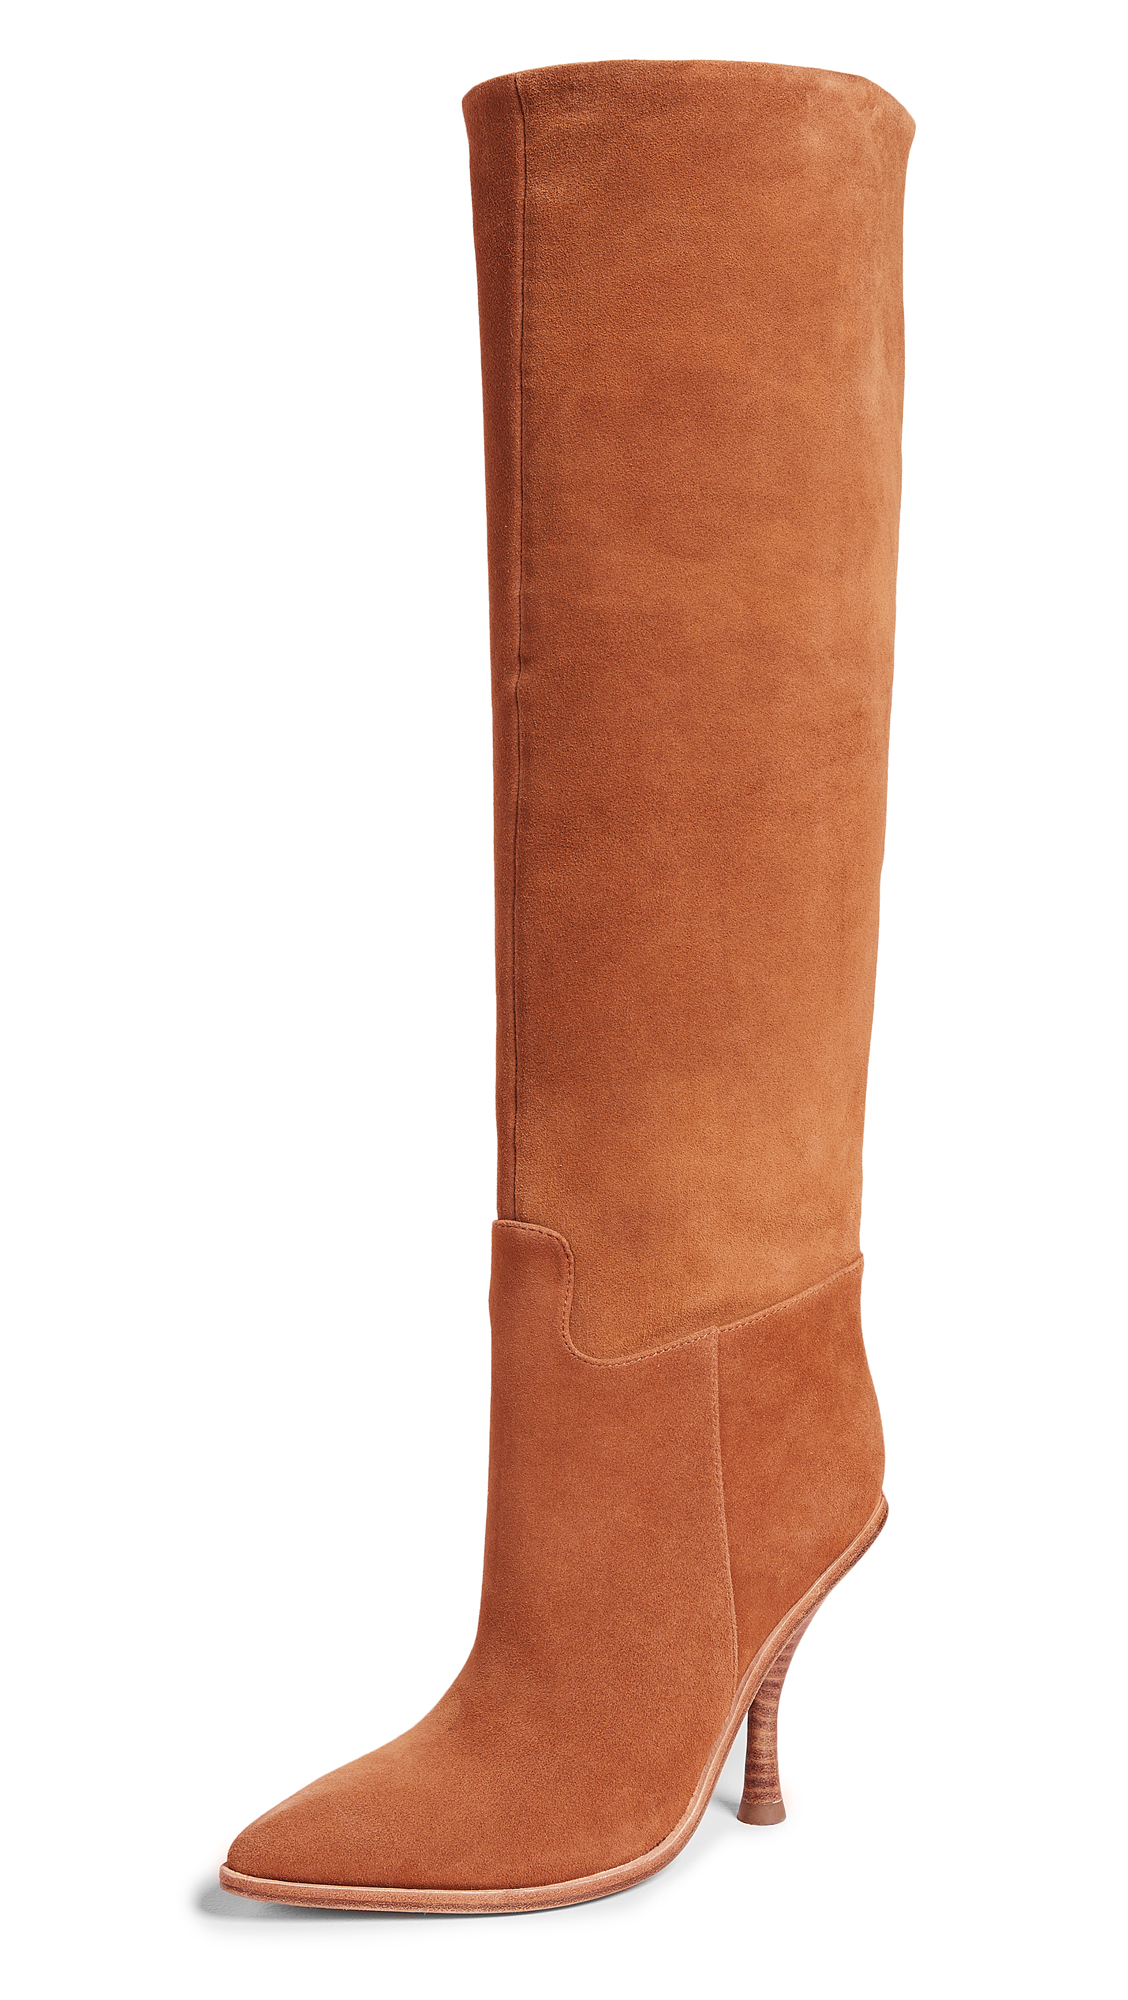 Sigerson Morrison Halie Pointed Toe Boots - Tan